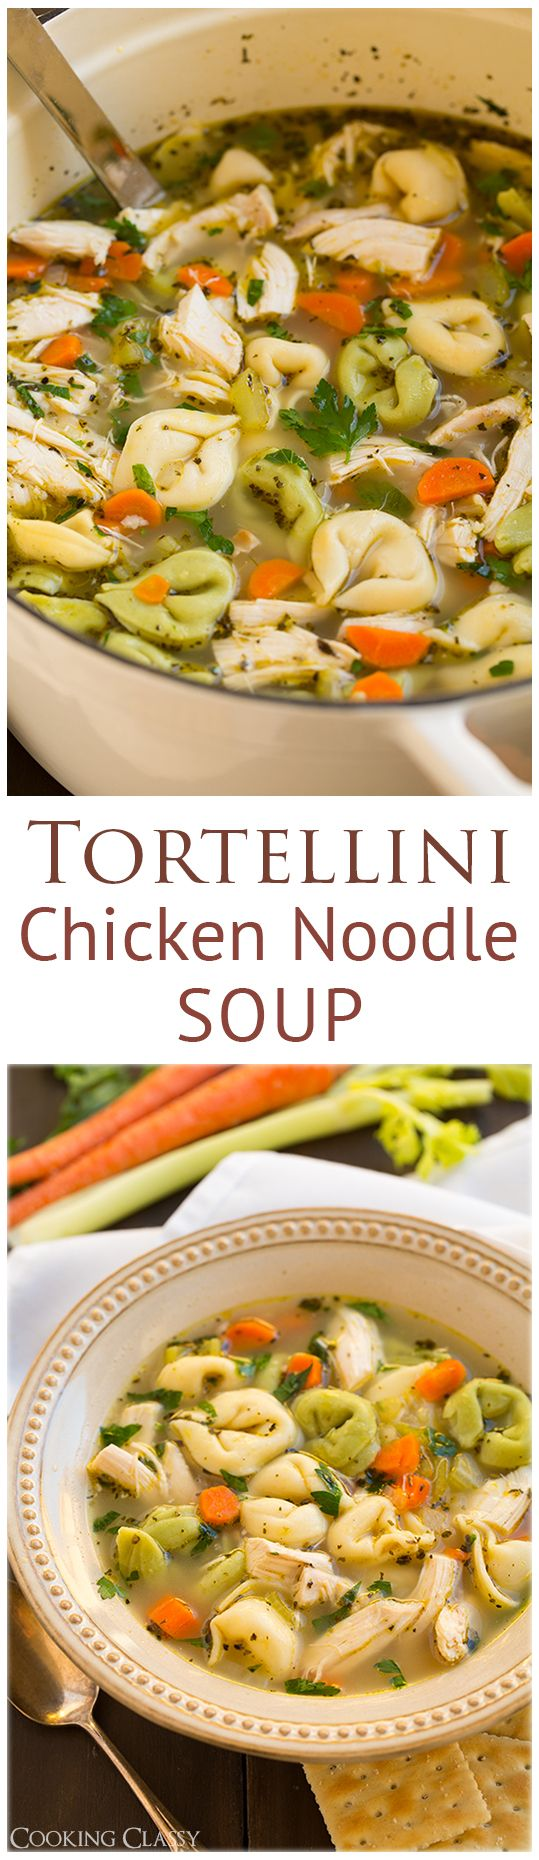 Tortellini Chicken Noodle Soup